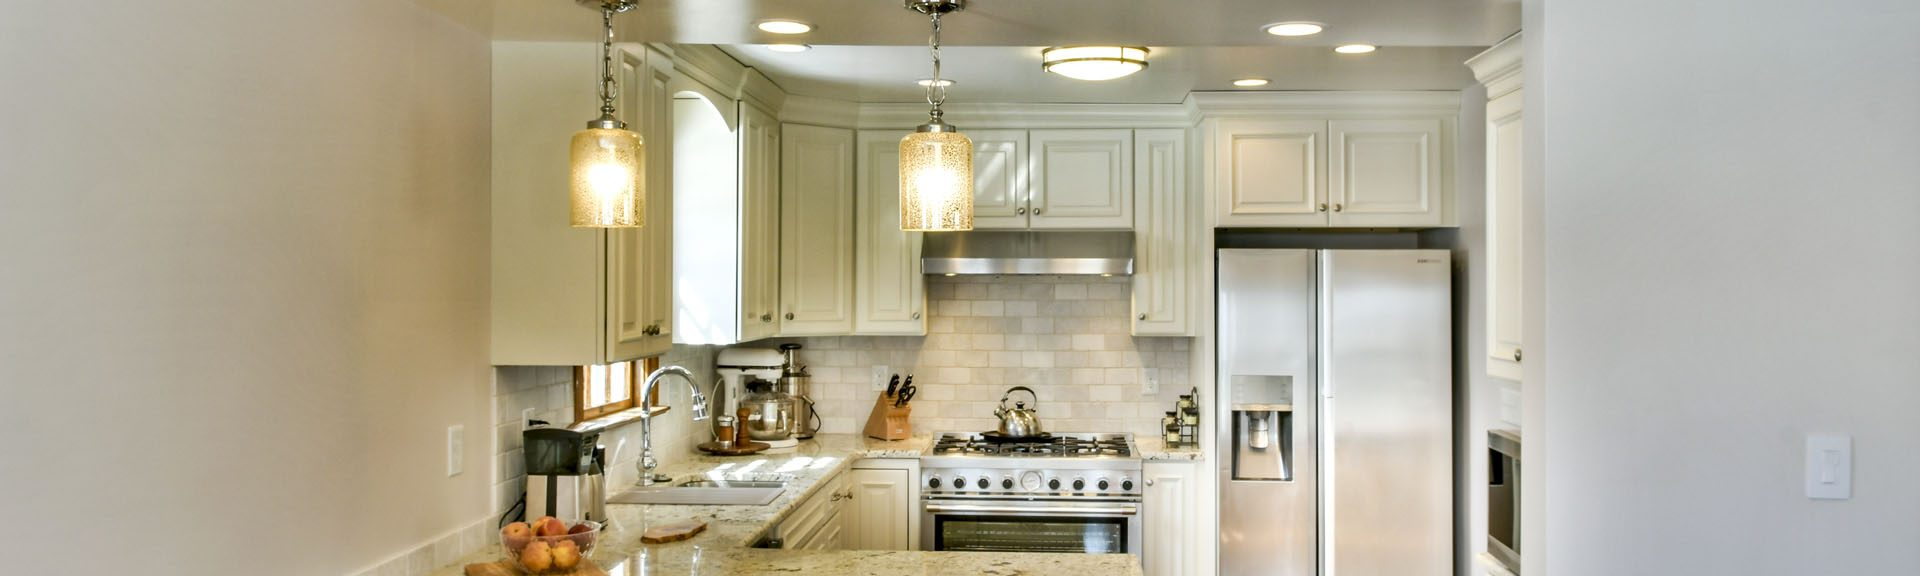 Louisville Interior Designer, Louisville Renovation Designer, Interior Design, Renovation Design, Bath Renovation, Kitchen Renovation, Hallway Renovation